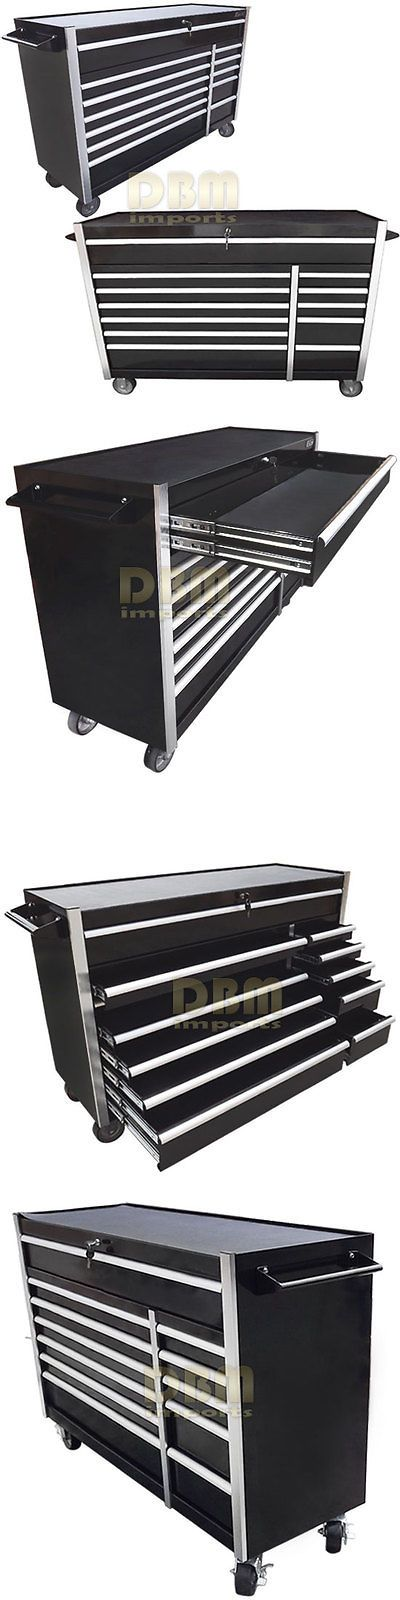 Marvelous Boxes and Cabinets Bottom Roller Metal Tool Chest Cabinet Box Storage Steel